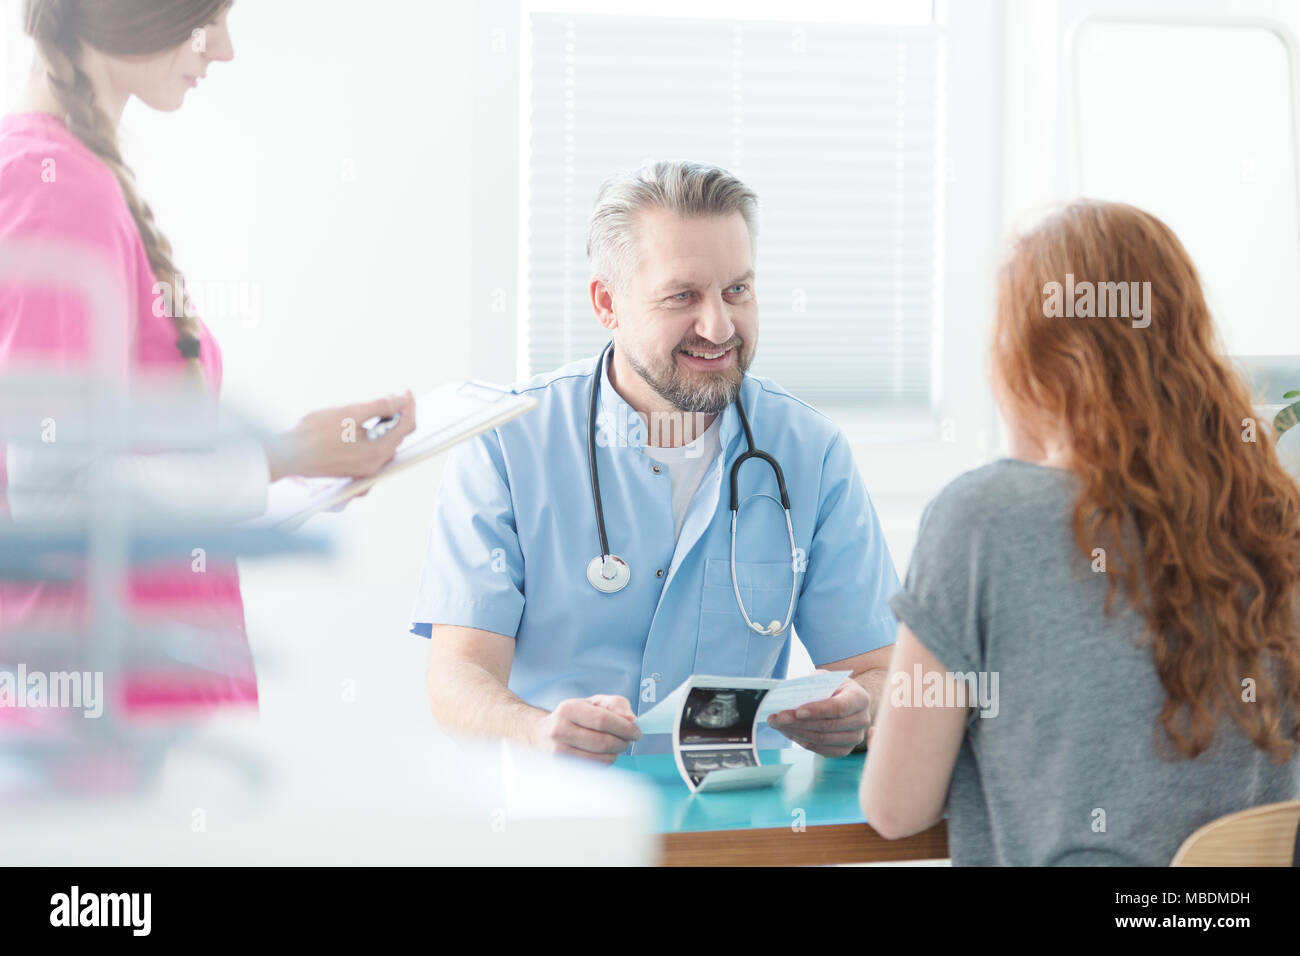 Optimistic doctor explaining ultrasound image to his patient and nurse taking notes - Stock Image